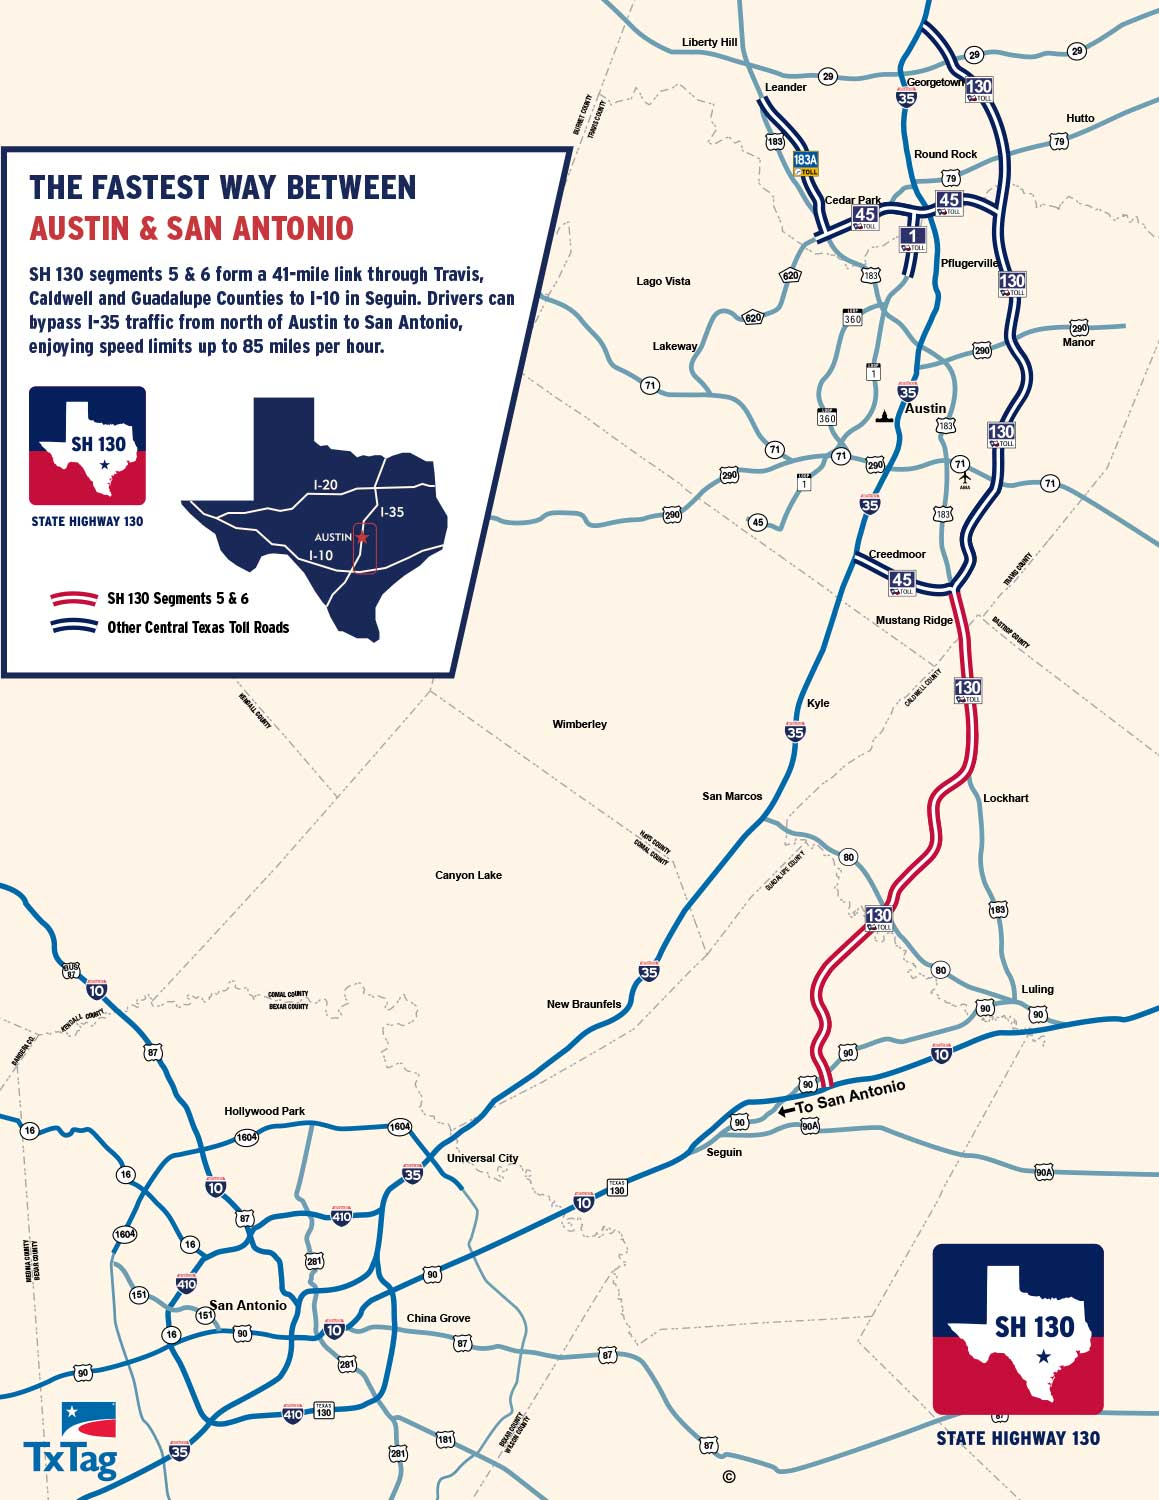 State Highway 130 Maps - SH 130 The fastest way between Austin & San ...